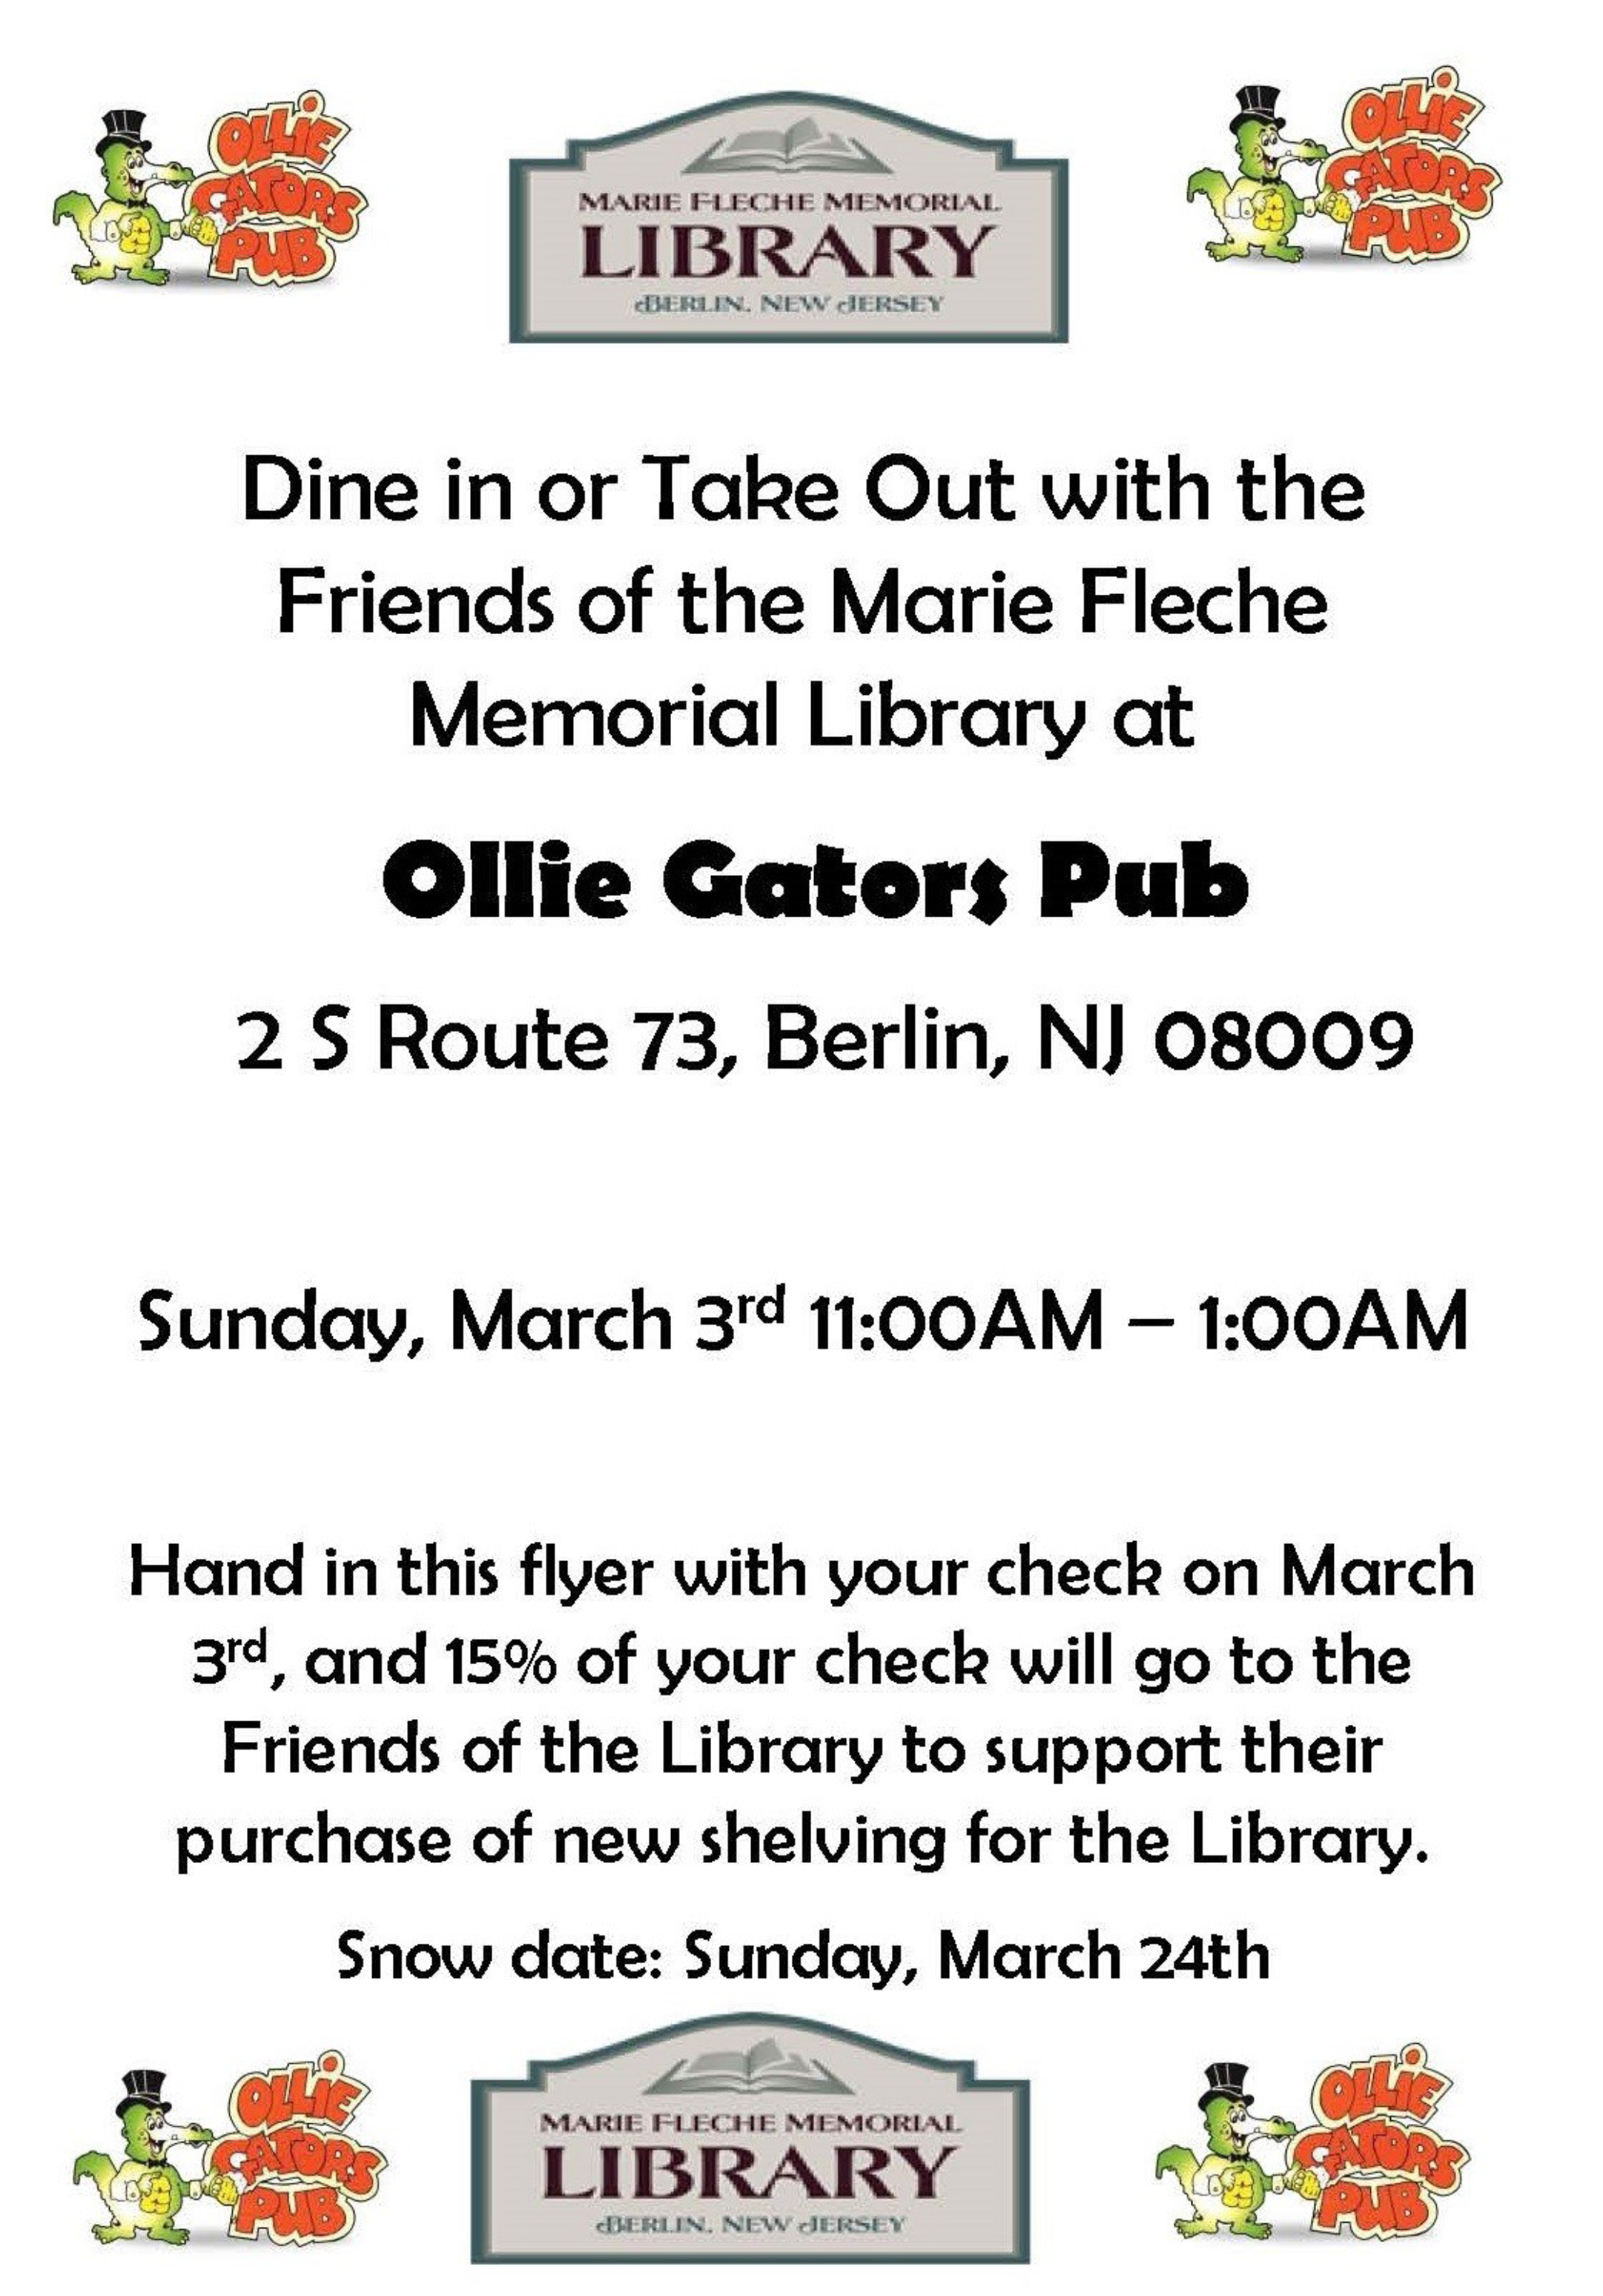 Previous Fundraisers Marie Fleche Memorial Library